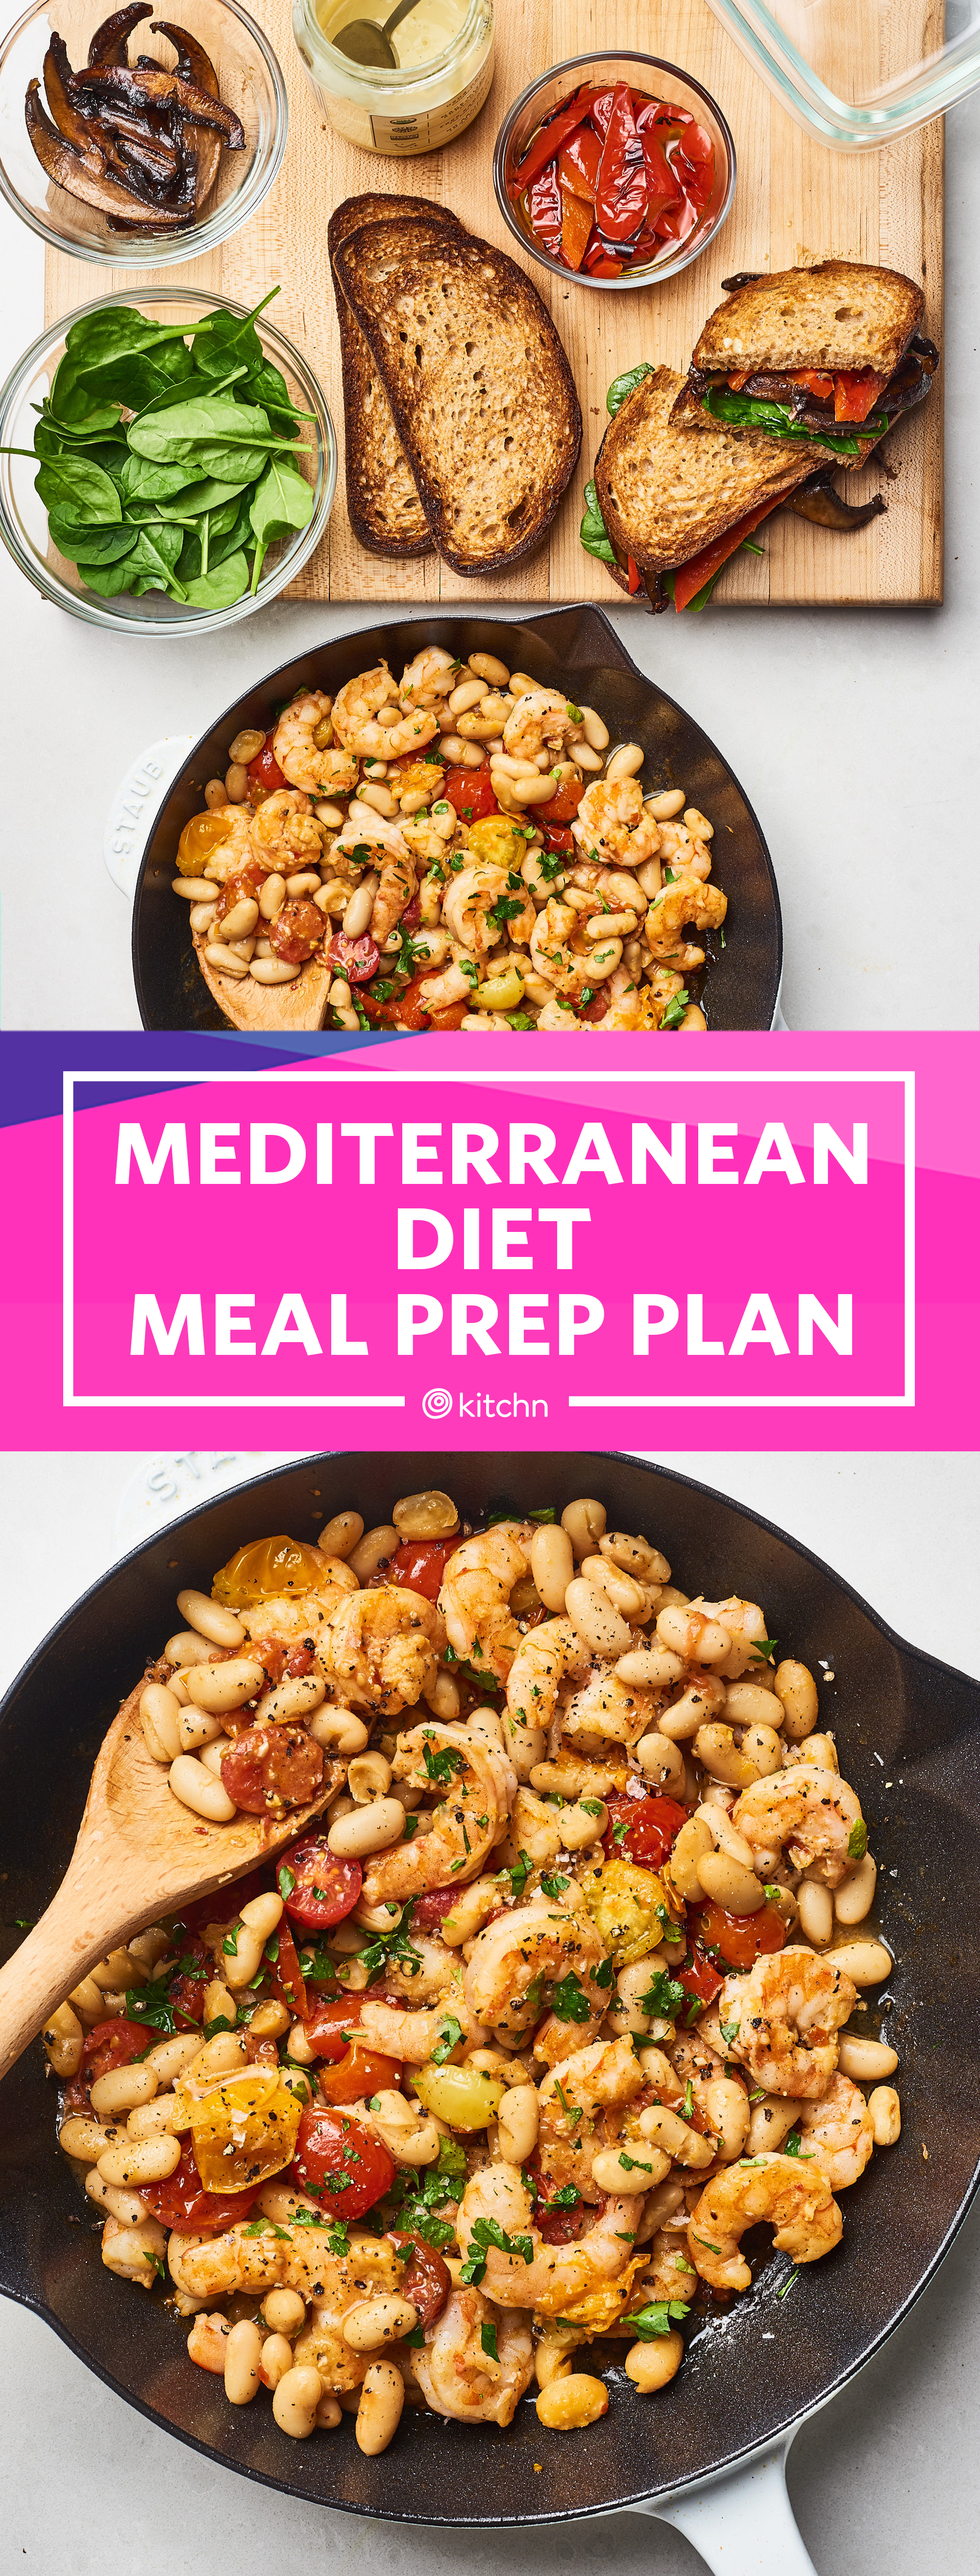 meditwrranean diet delivery meal plan